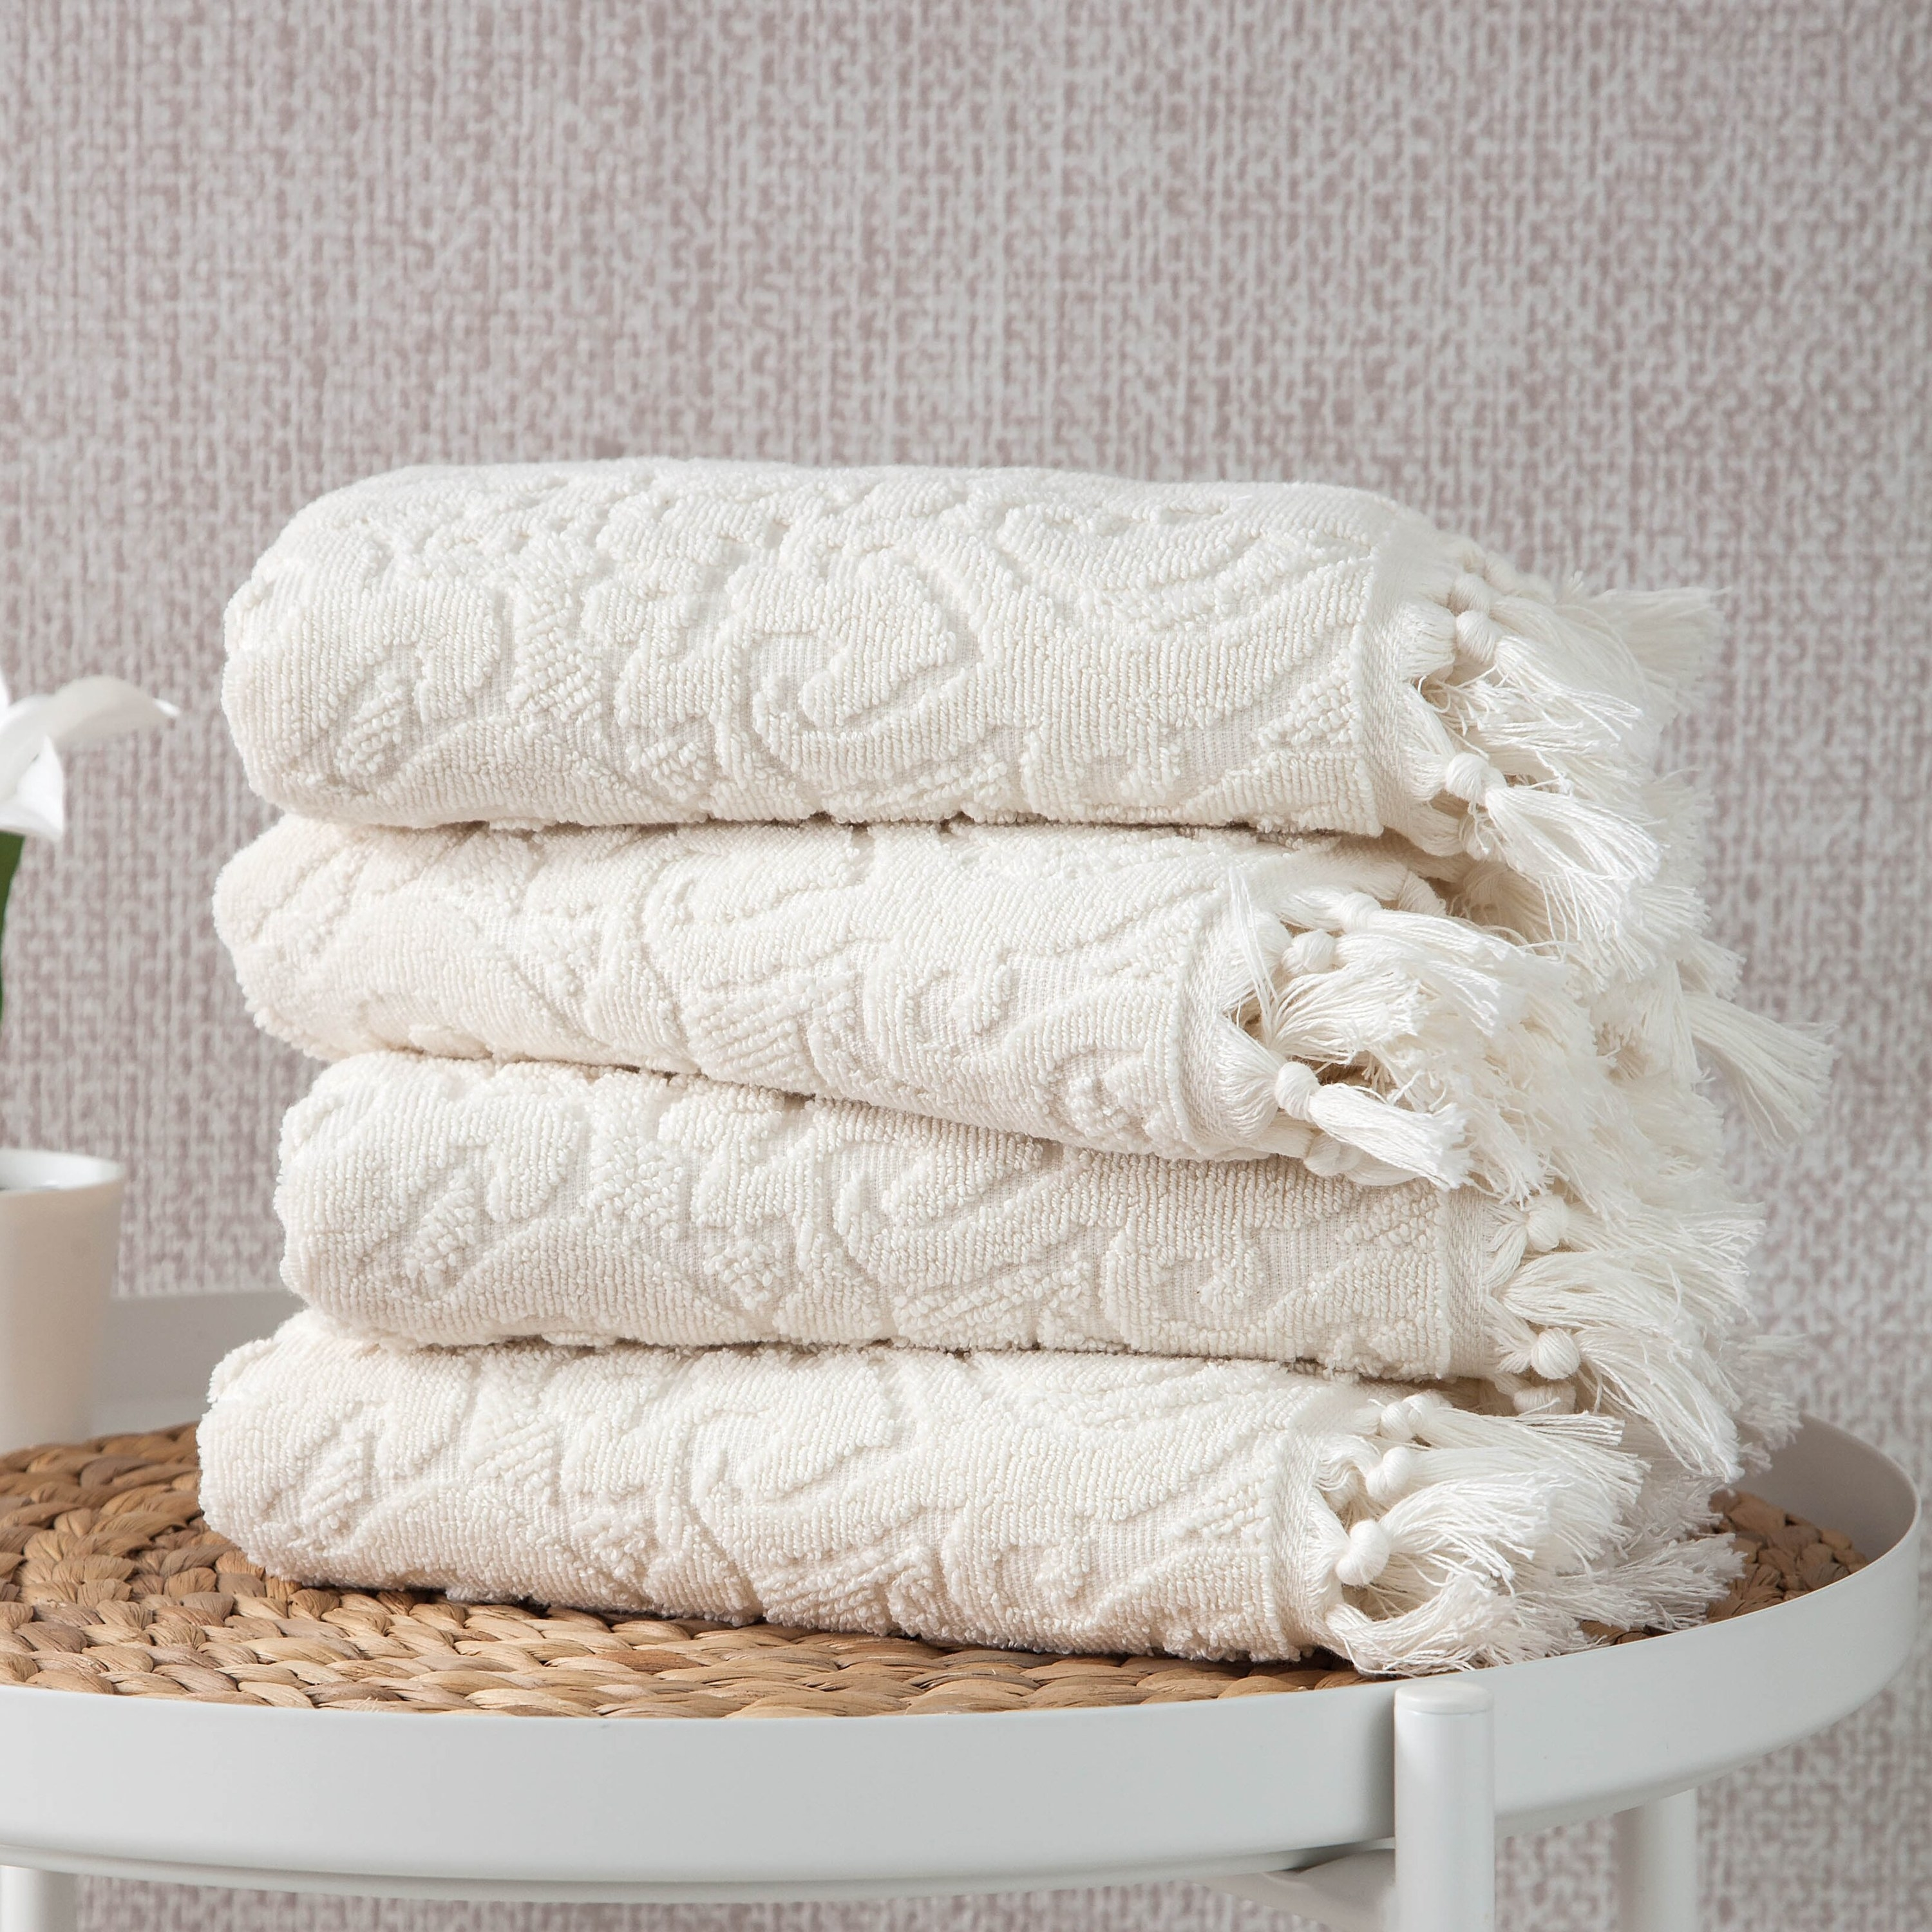 Hand towels sitting on wicker stool